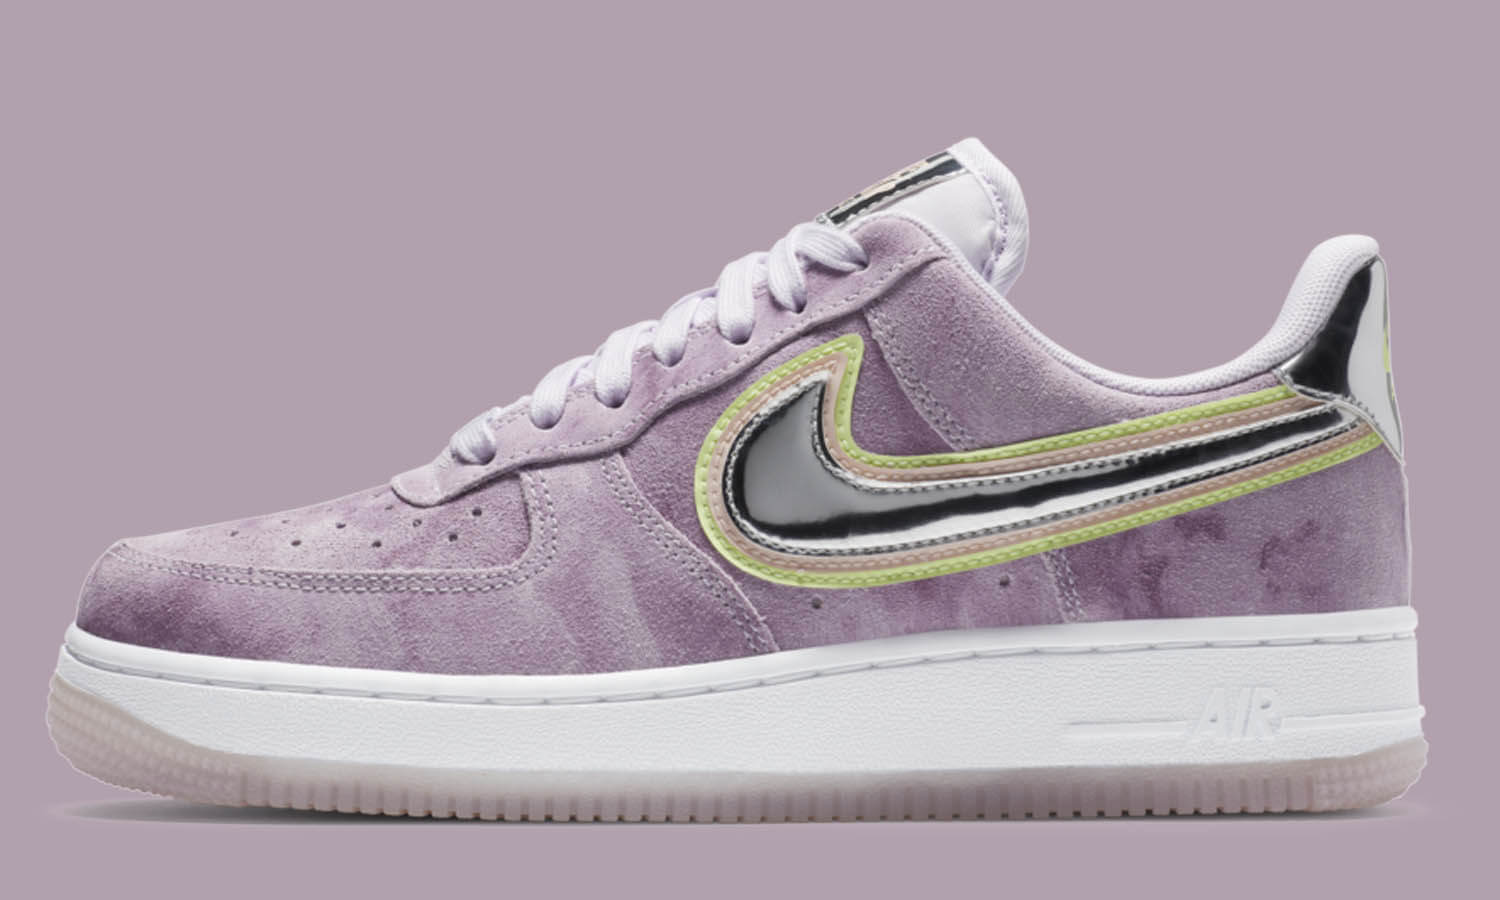 Nike Air Force 1 Low P(HER)SPECTIVE